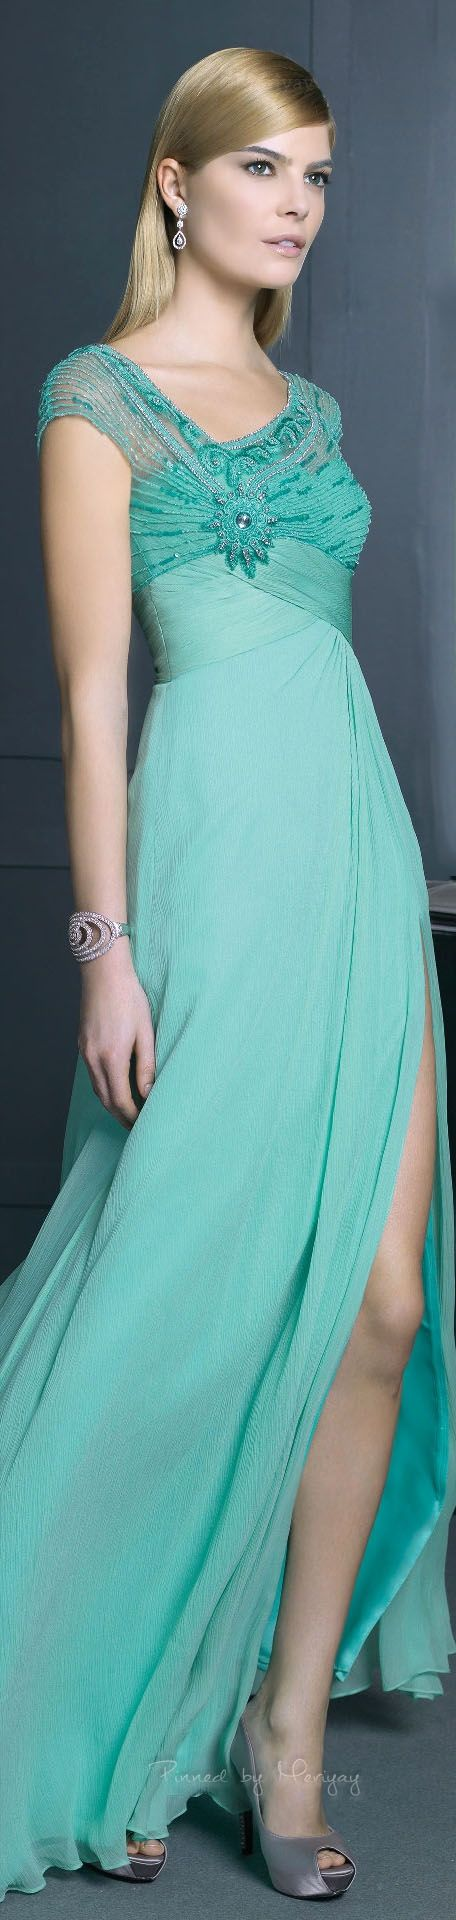 Rosa Clará ~ Spring Cap Sleeve Gown, Agua 2015 - Imagine this gown in a jewel tone as well. Stunning